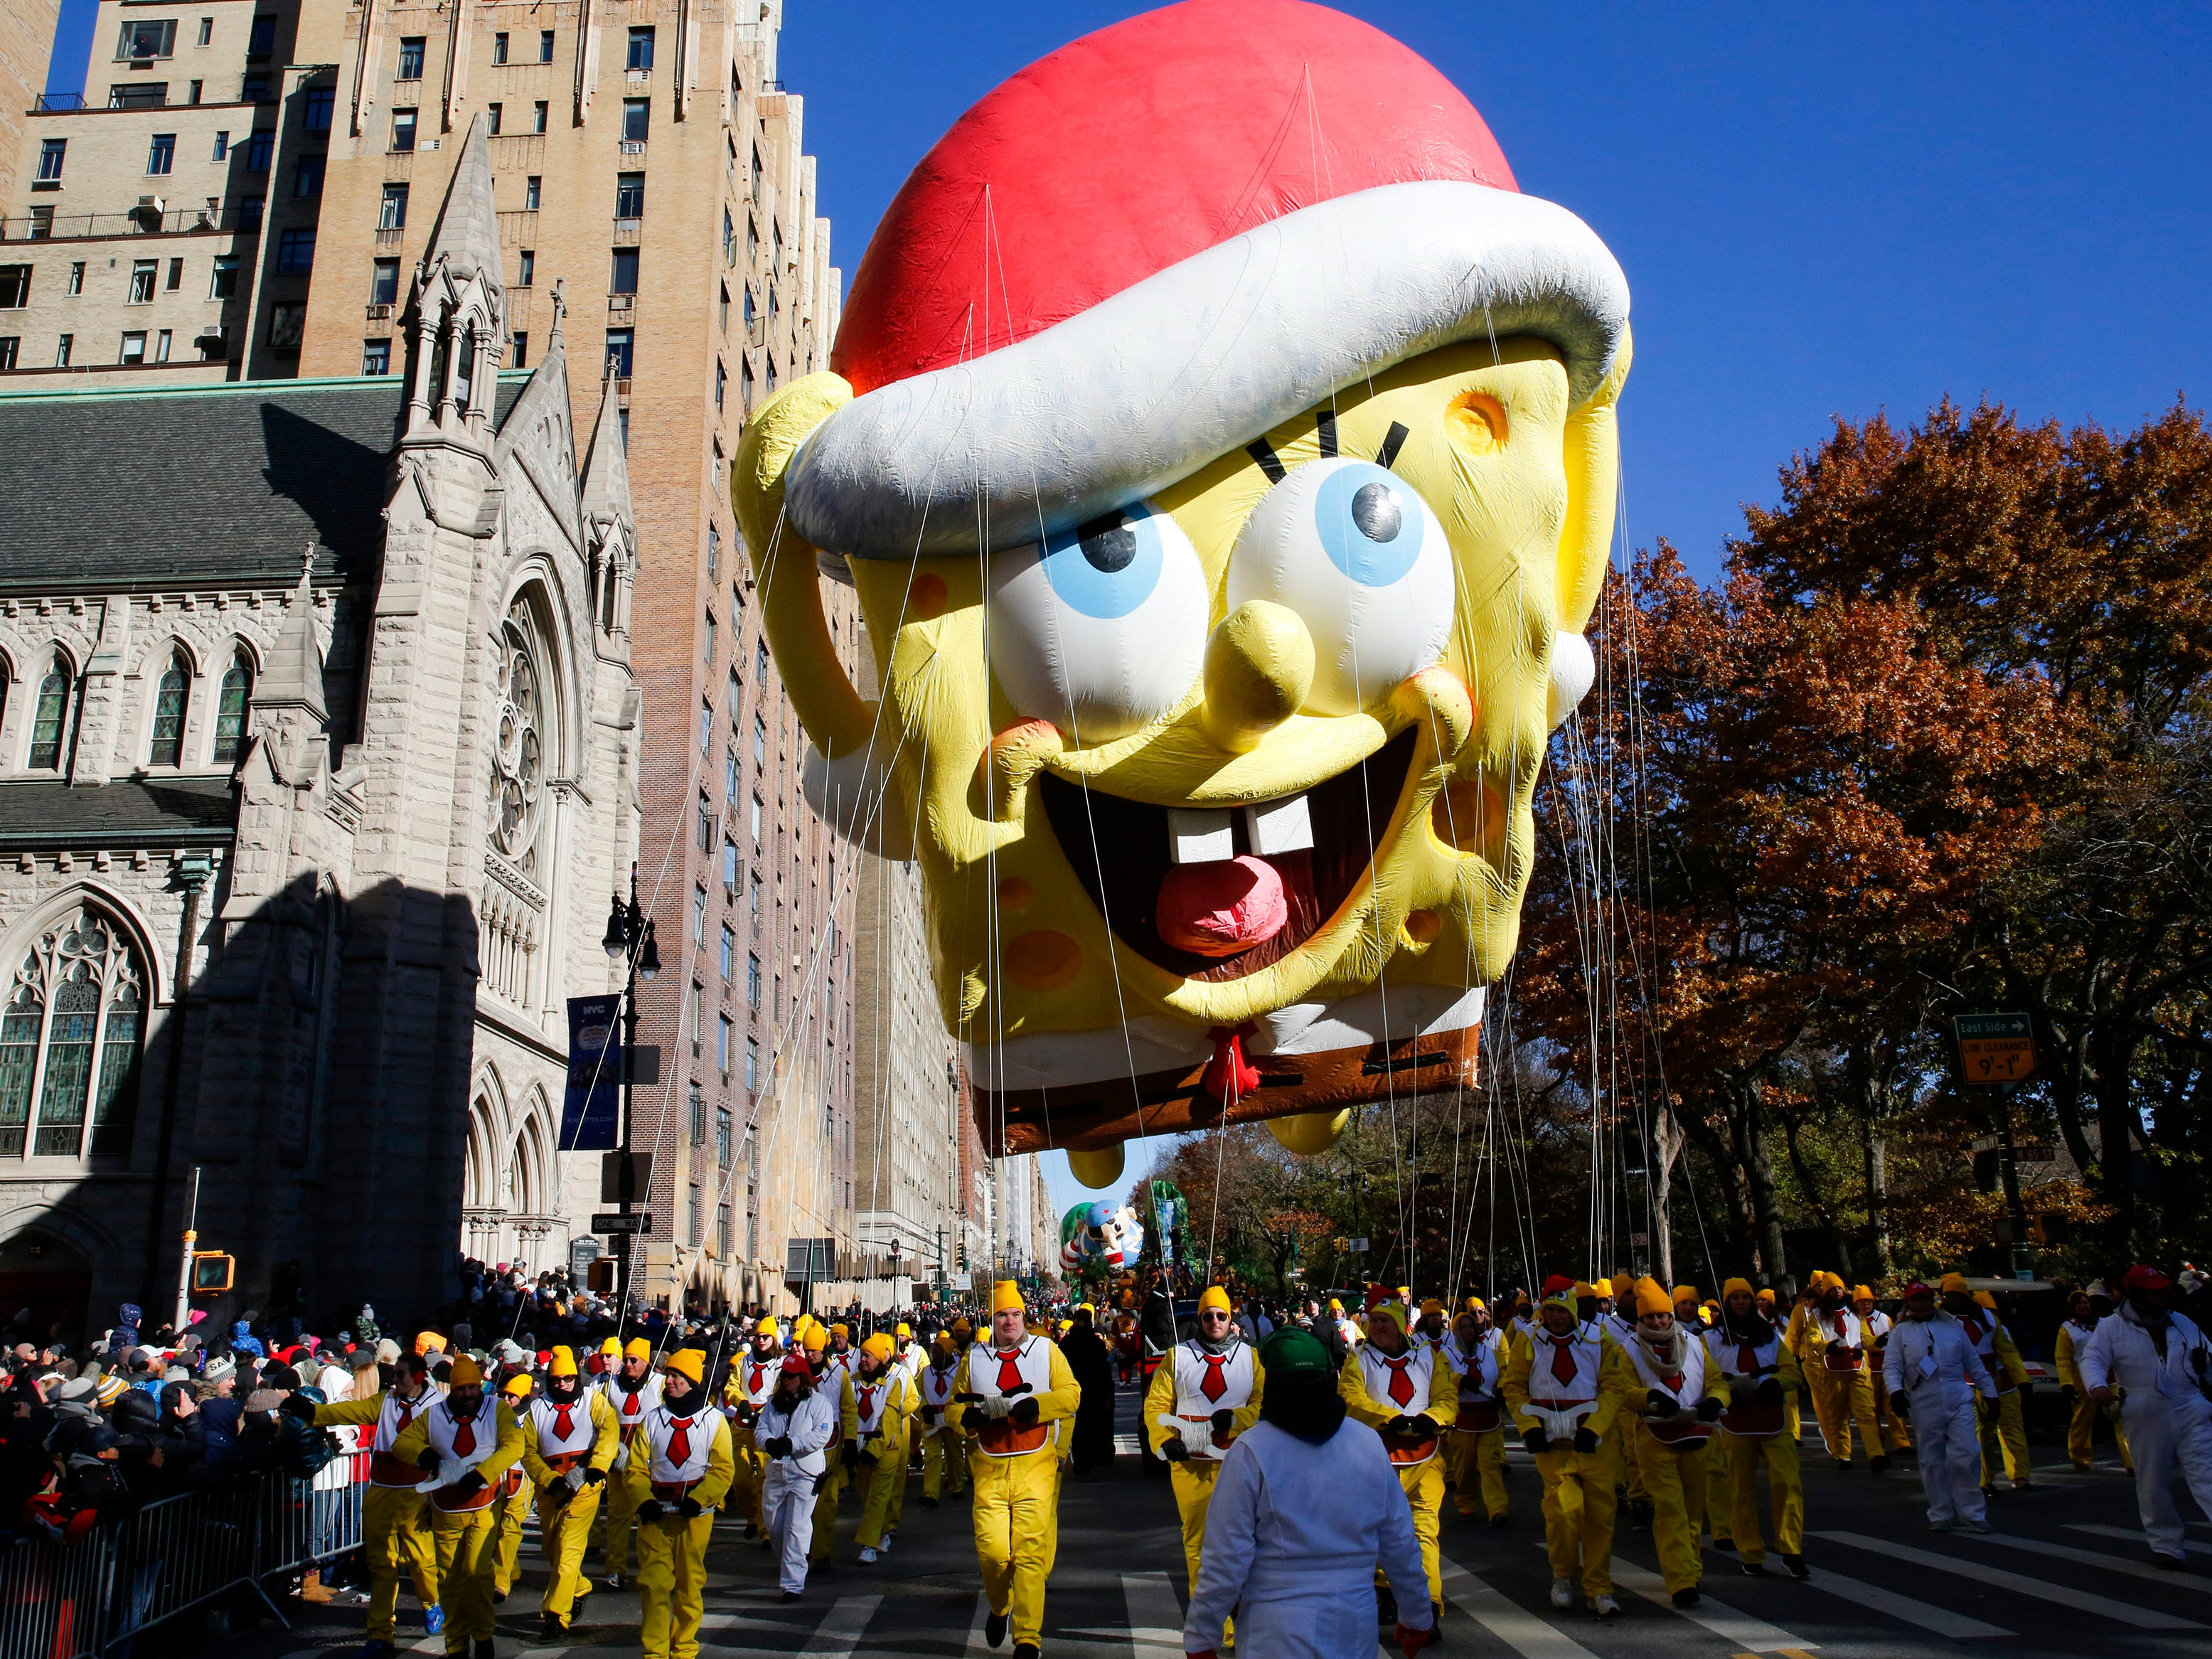 A Spongebob Squarepants balloon floats over Central Park West during the 92nd annual Macy's Thanksgiving Day Parade in New York, Thursday, Nov. 22, 2018.